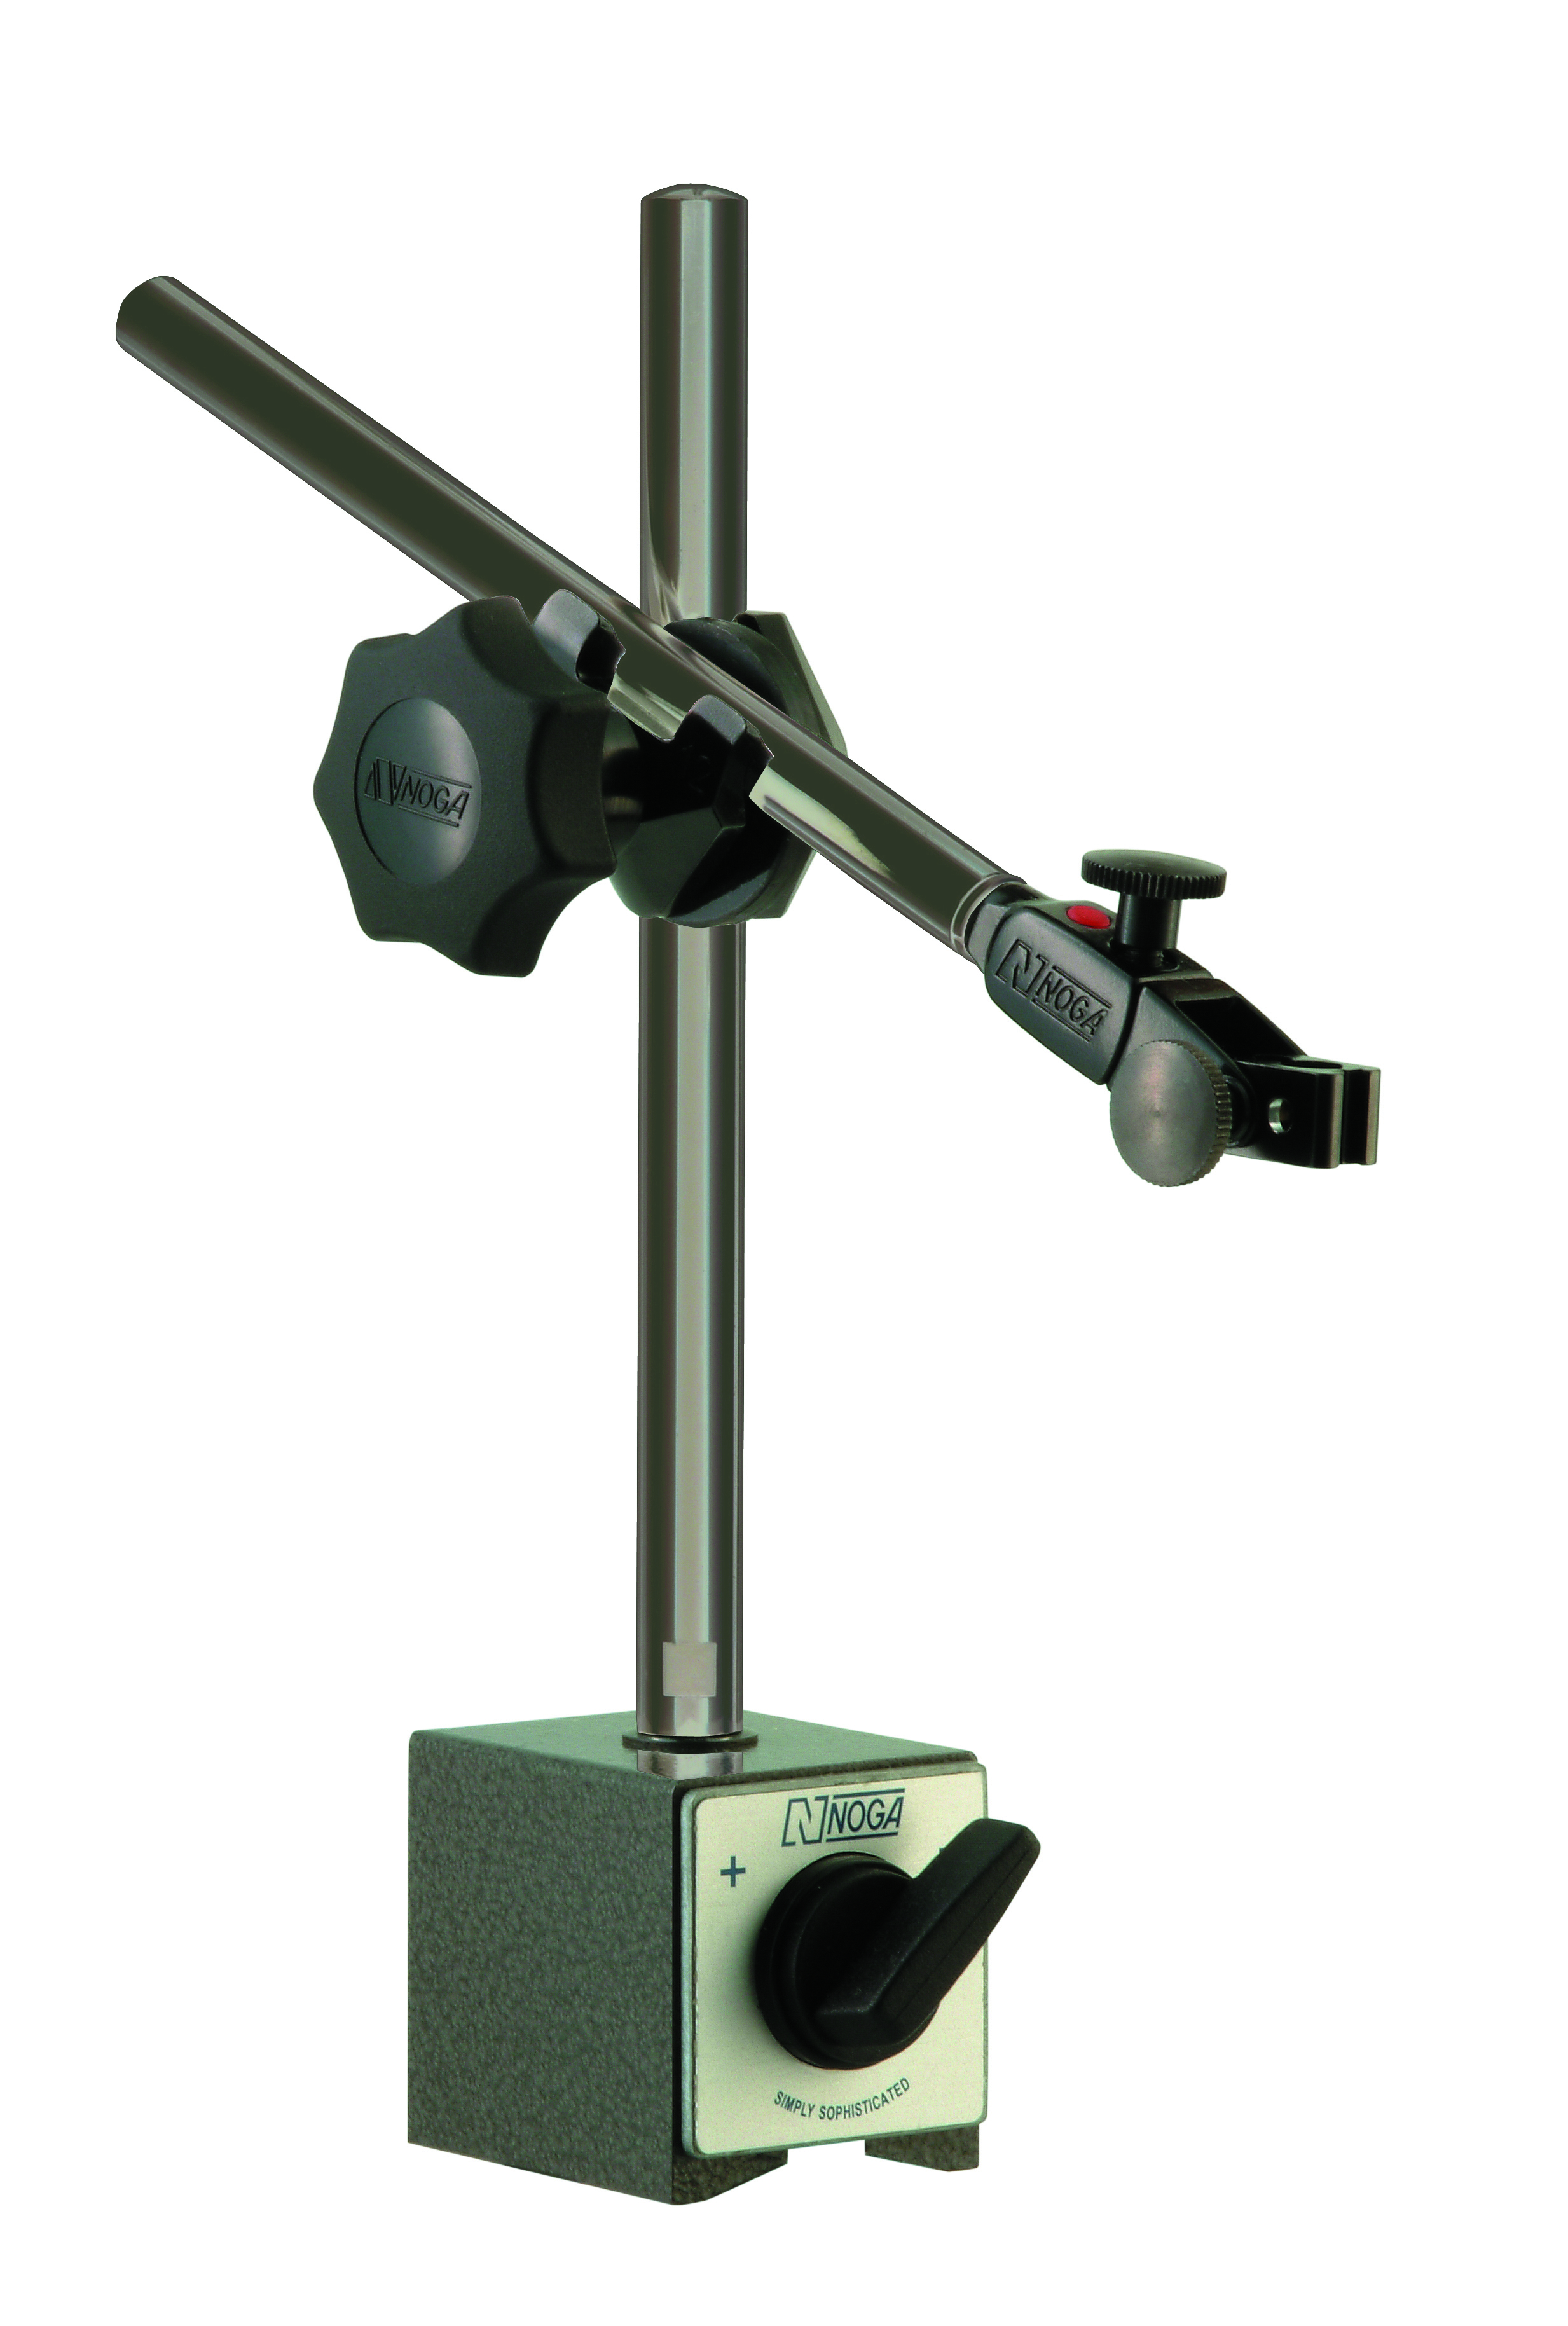 Standard Long Strut Type PH Holder with Fine Tip Adjustment Mechanism